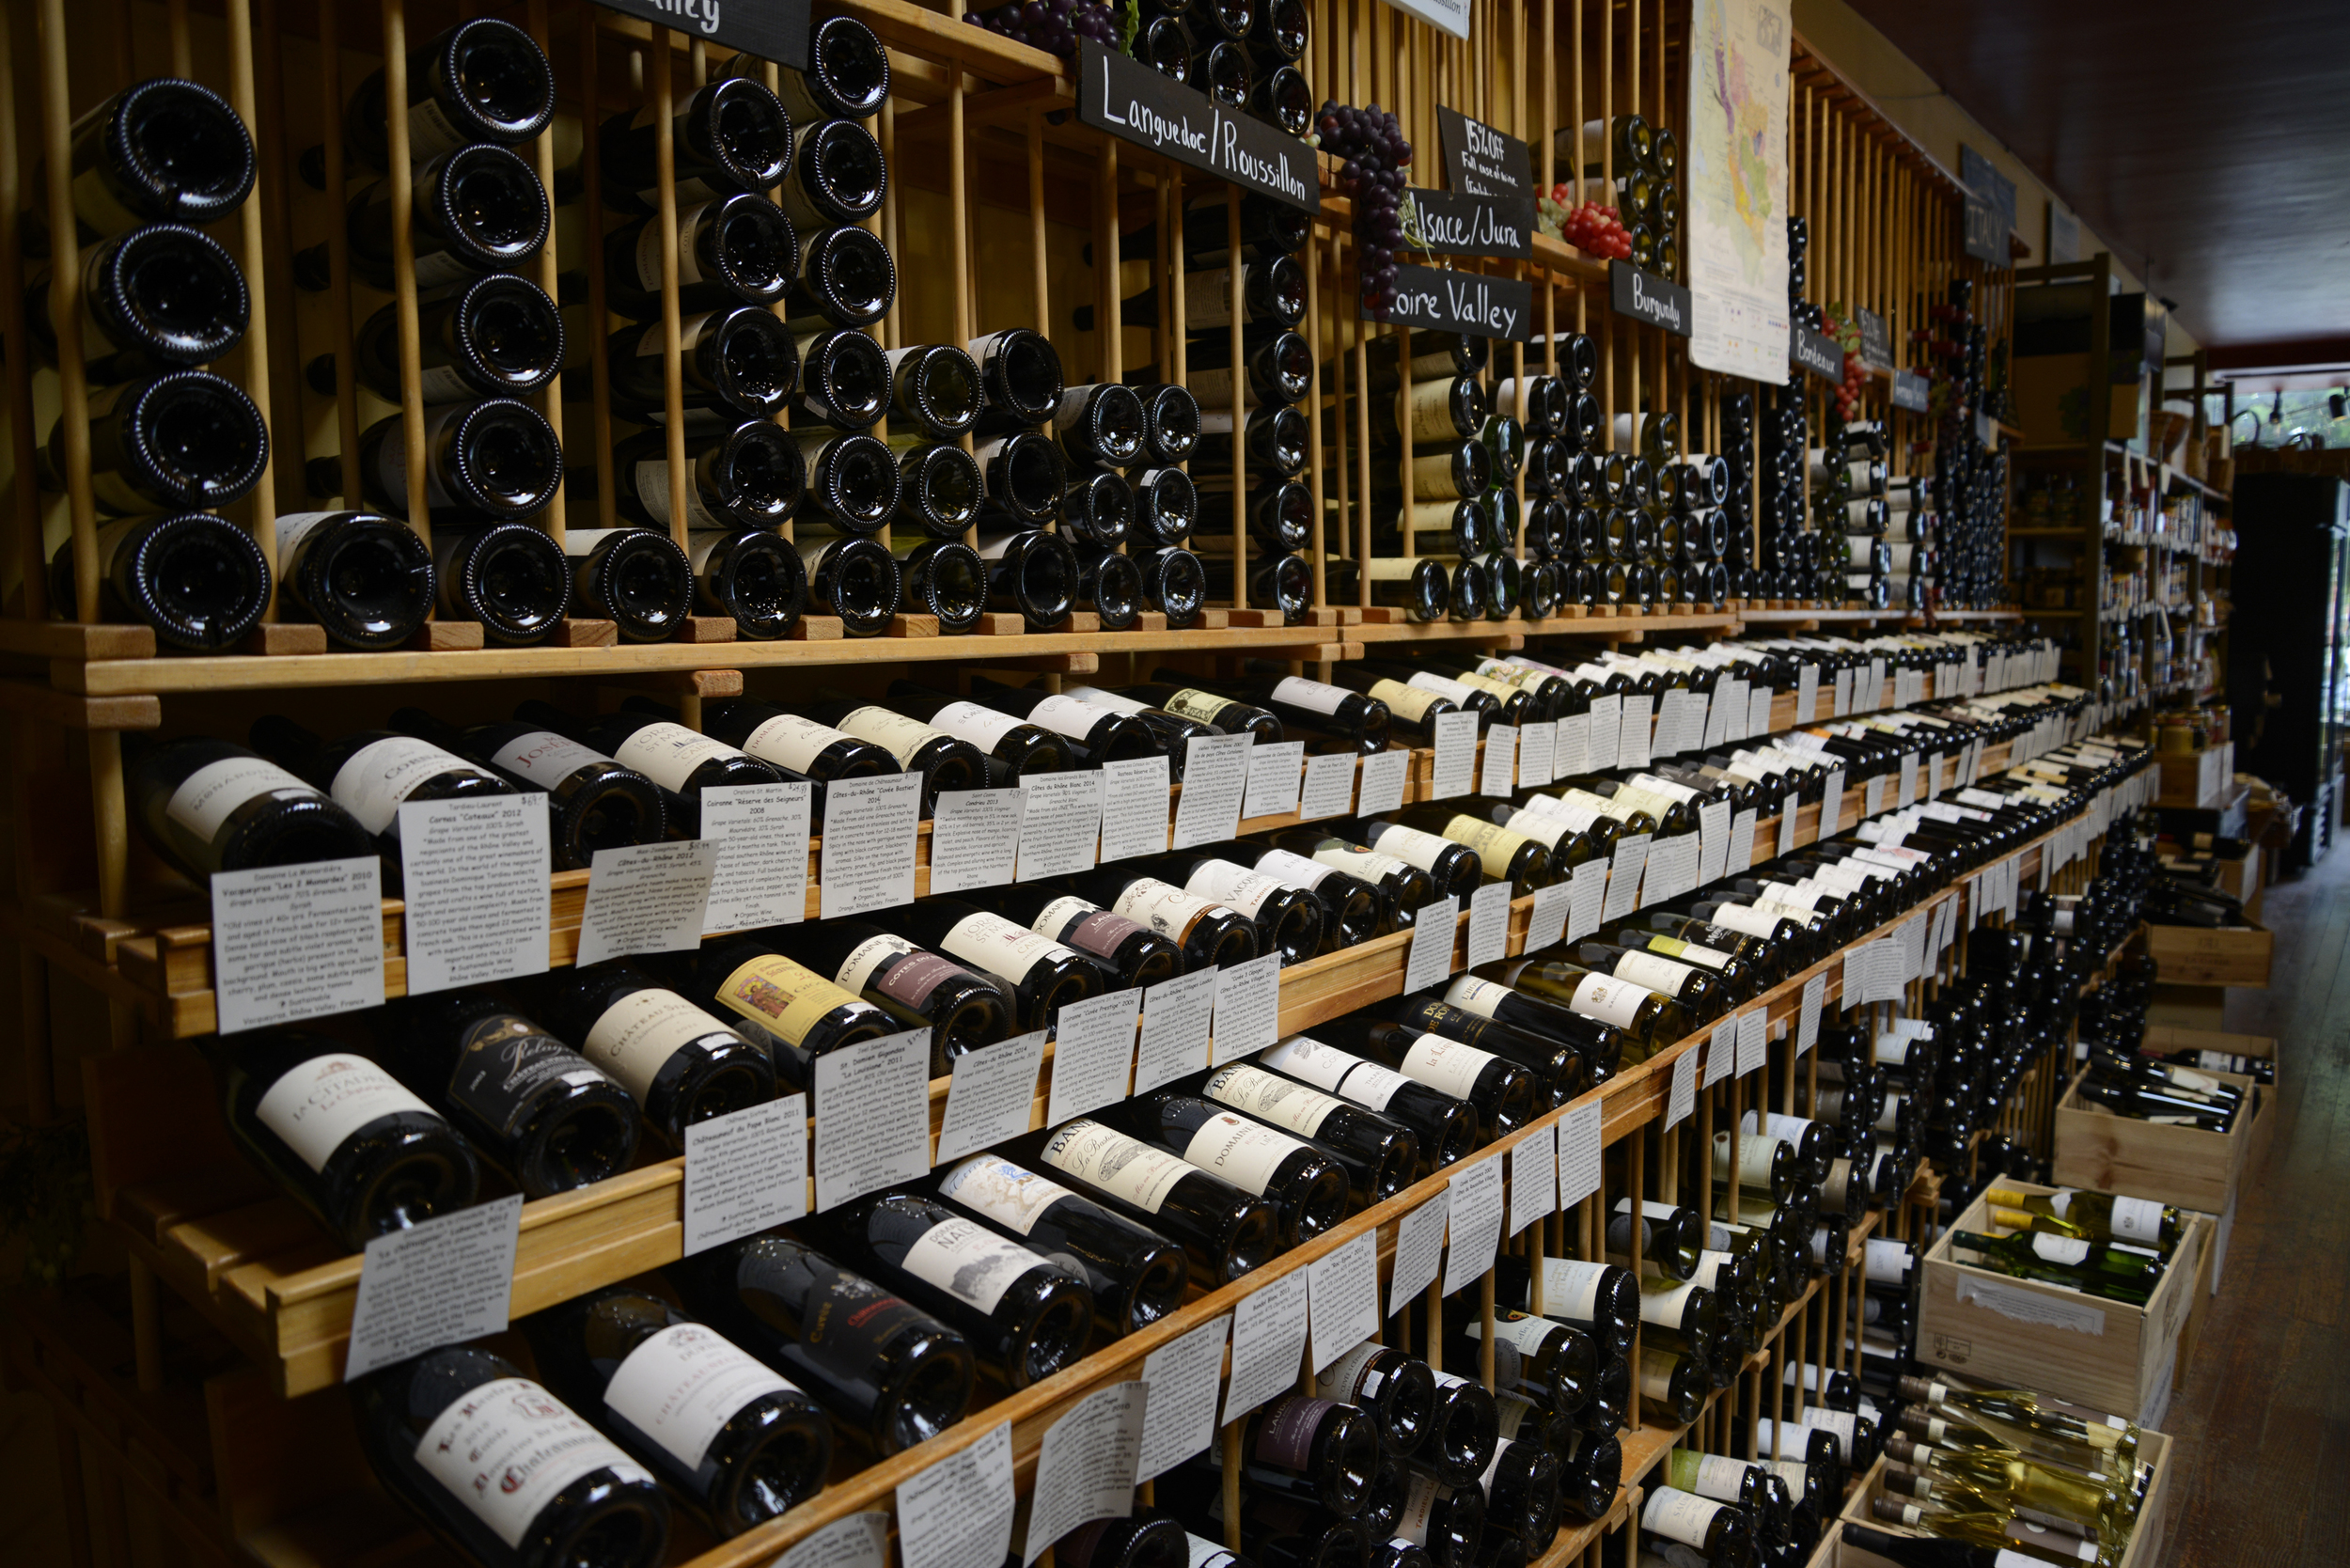 Grand Trunk's selection of French Wines, categorized by region